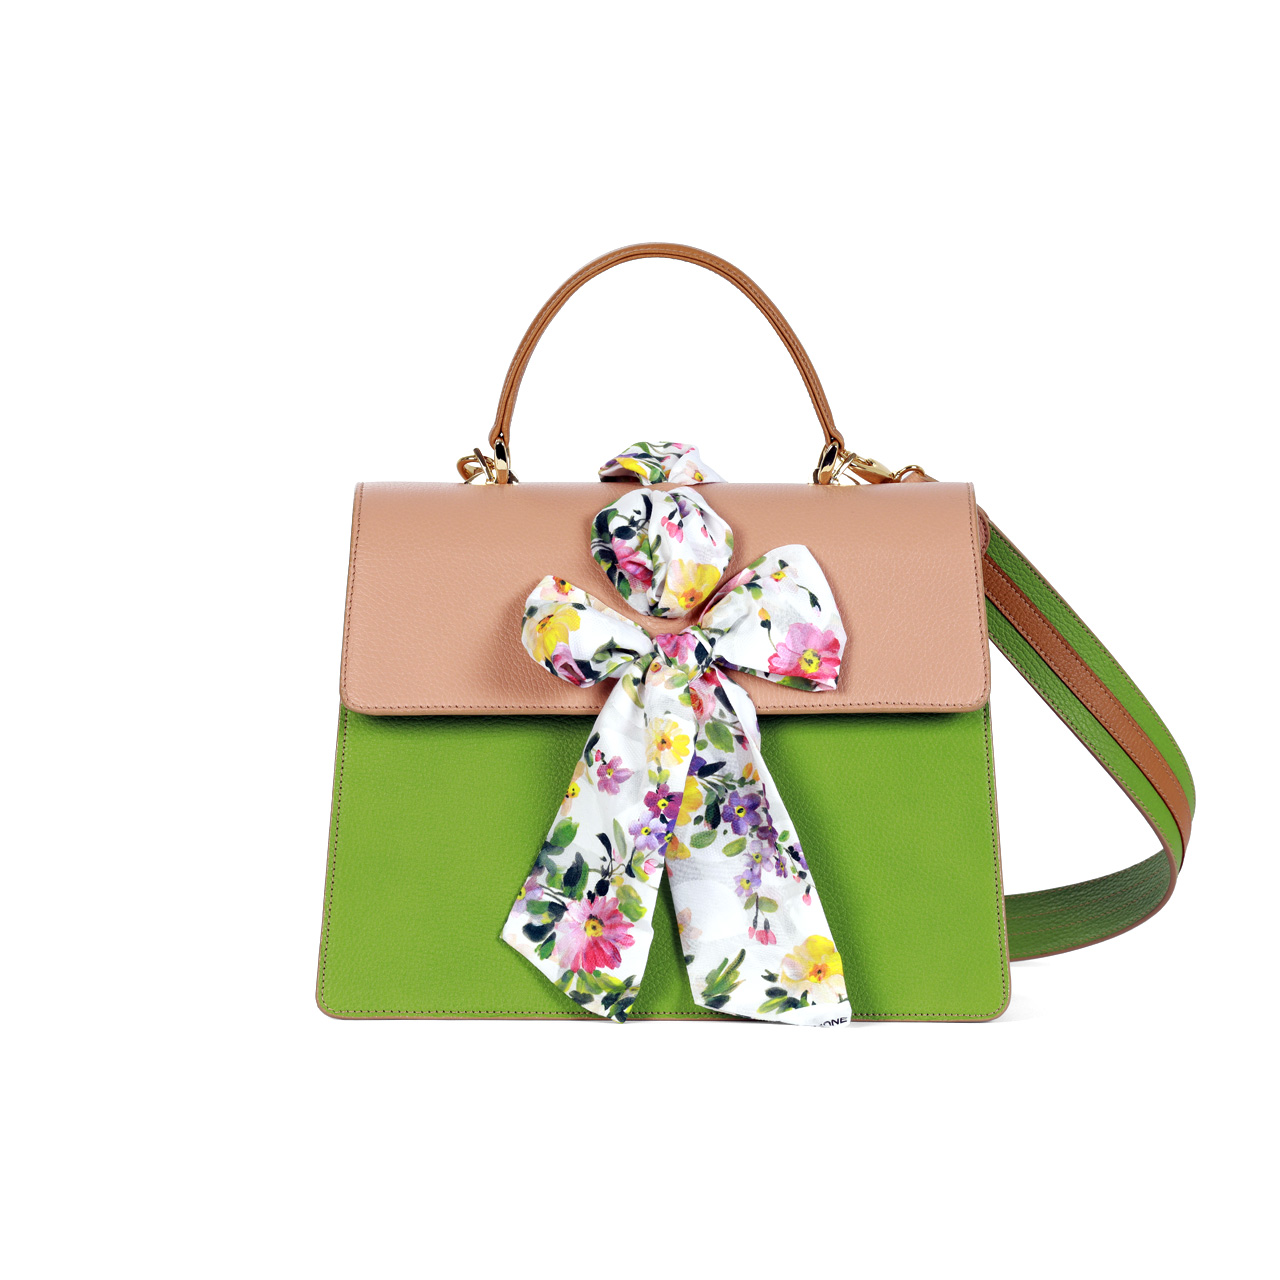 Flavia Pistacho Green, Pink and leather